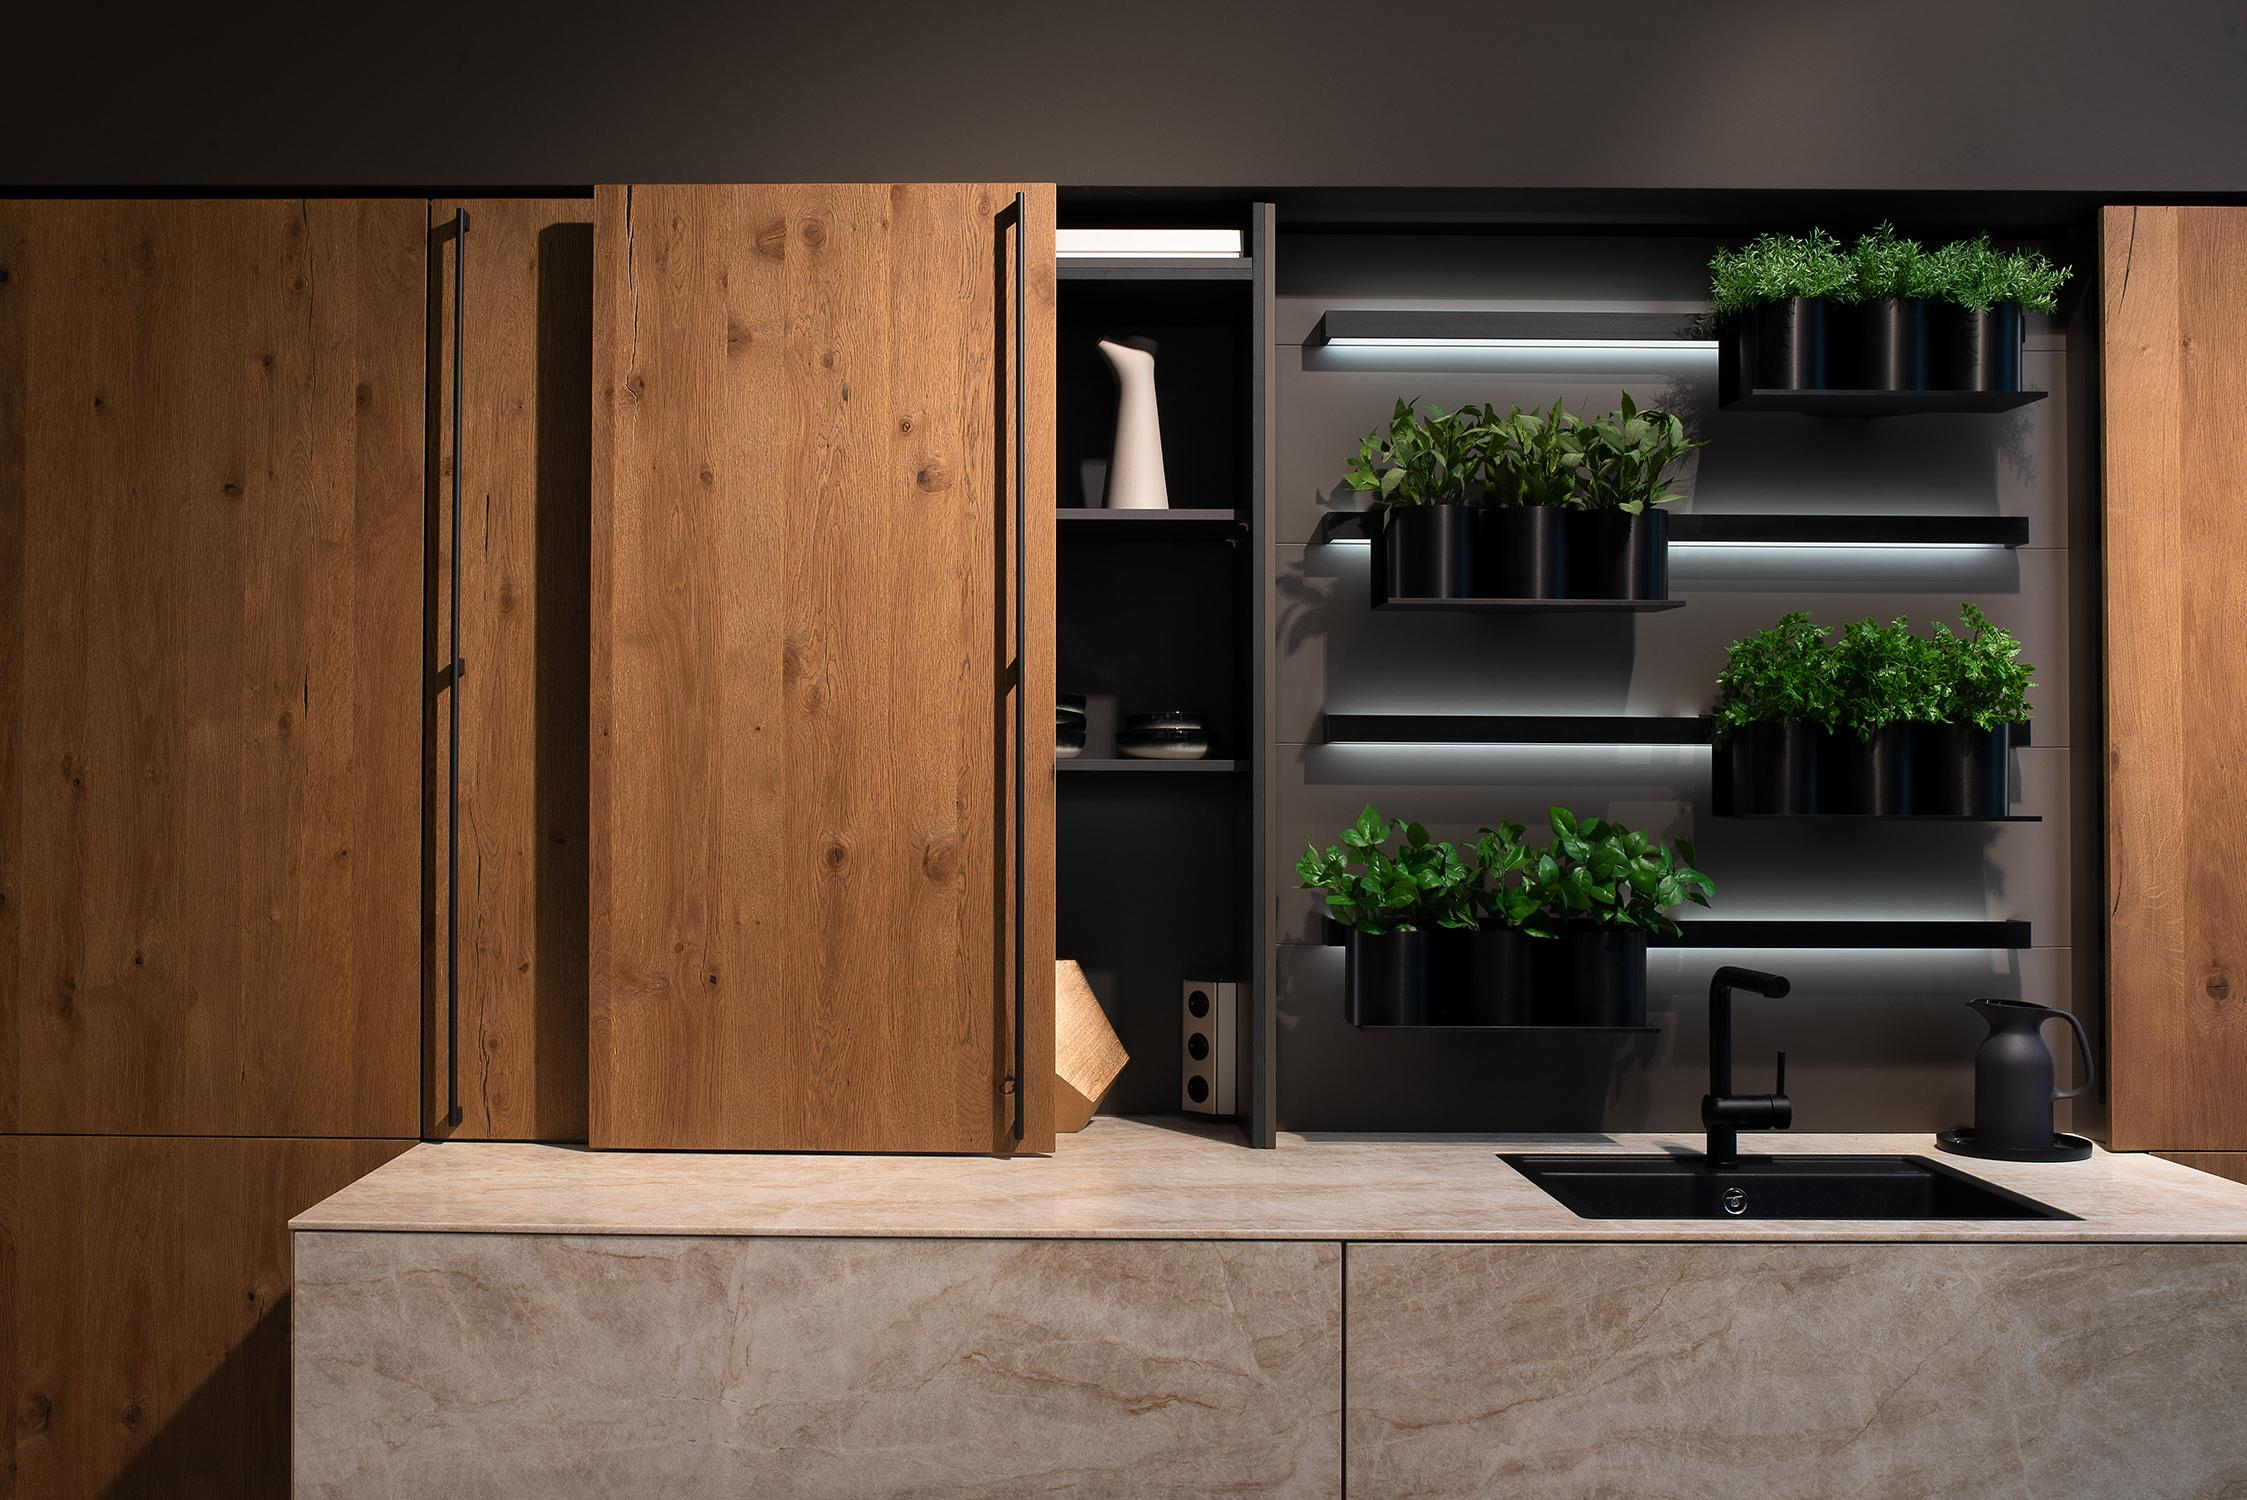 Decoration Month: Making the Most of Smaller Kitchen Spaces | Controlled Interiors